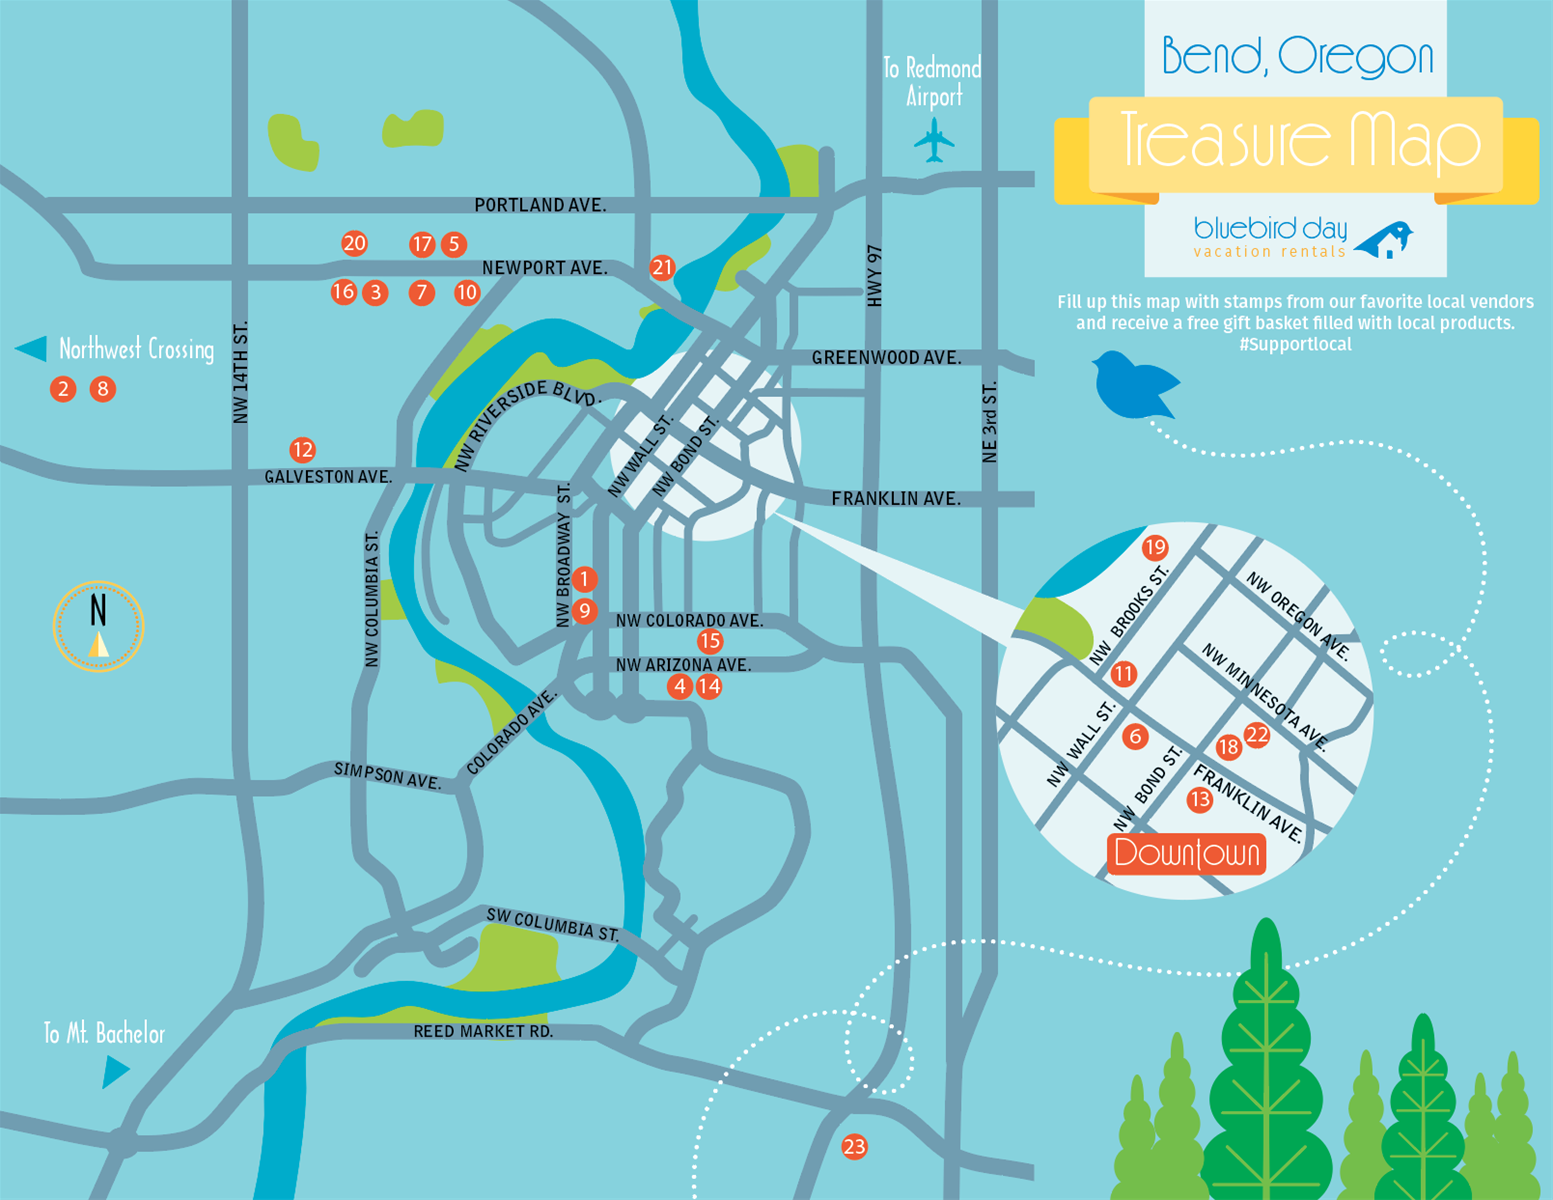 Bluebird Day Treasure Map Bend Or Local Community Breweries